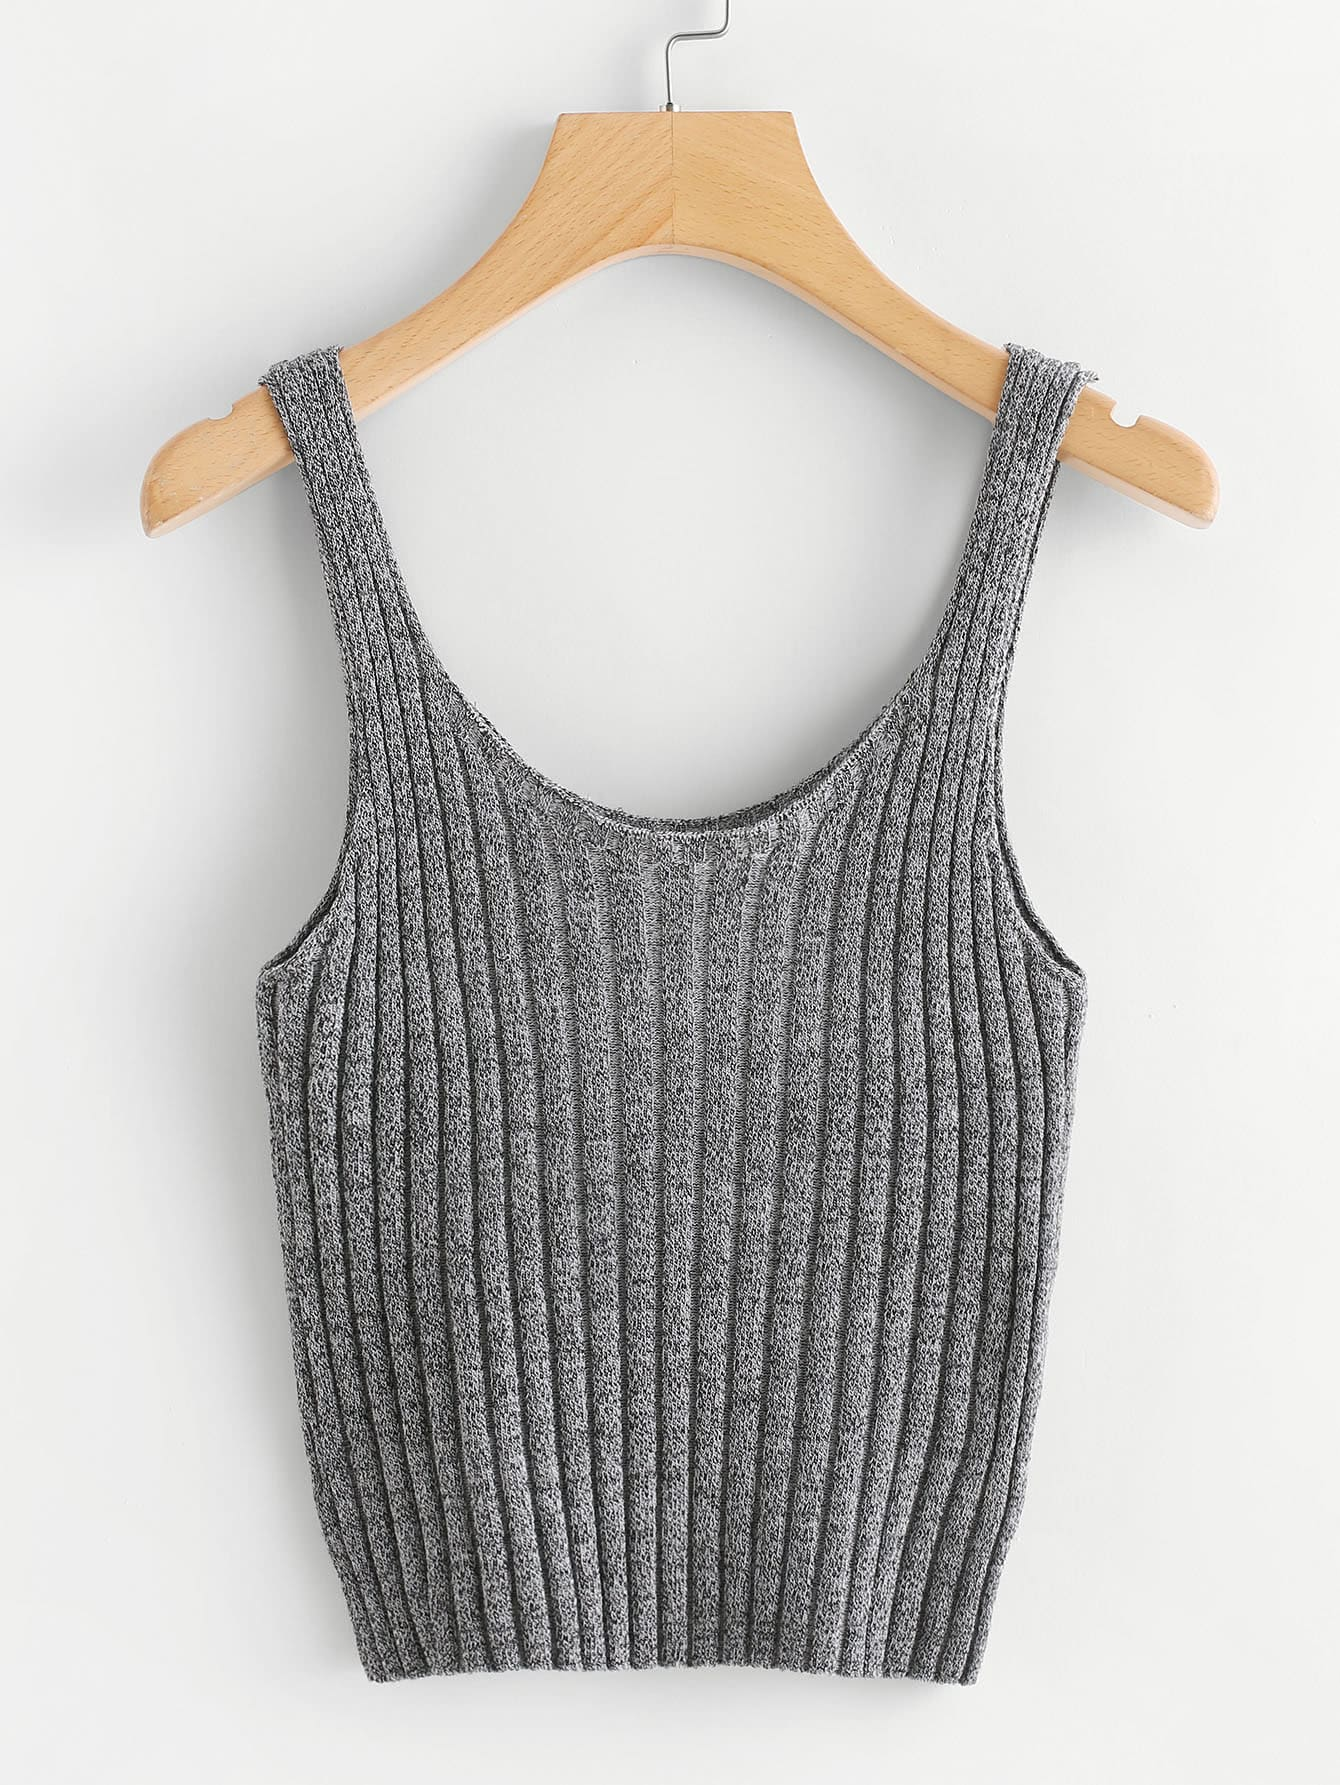 Ribbed Tank Crop Top knot front crop ribbed tank top